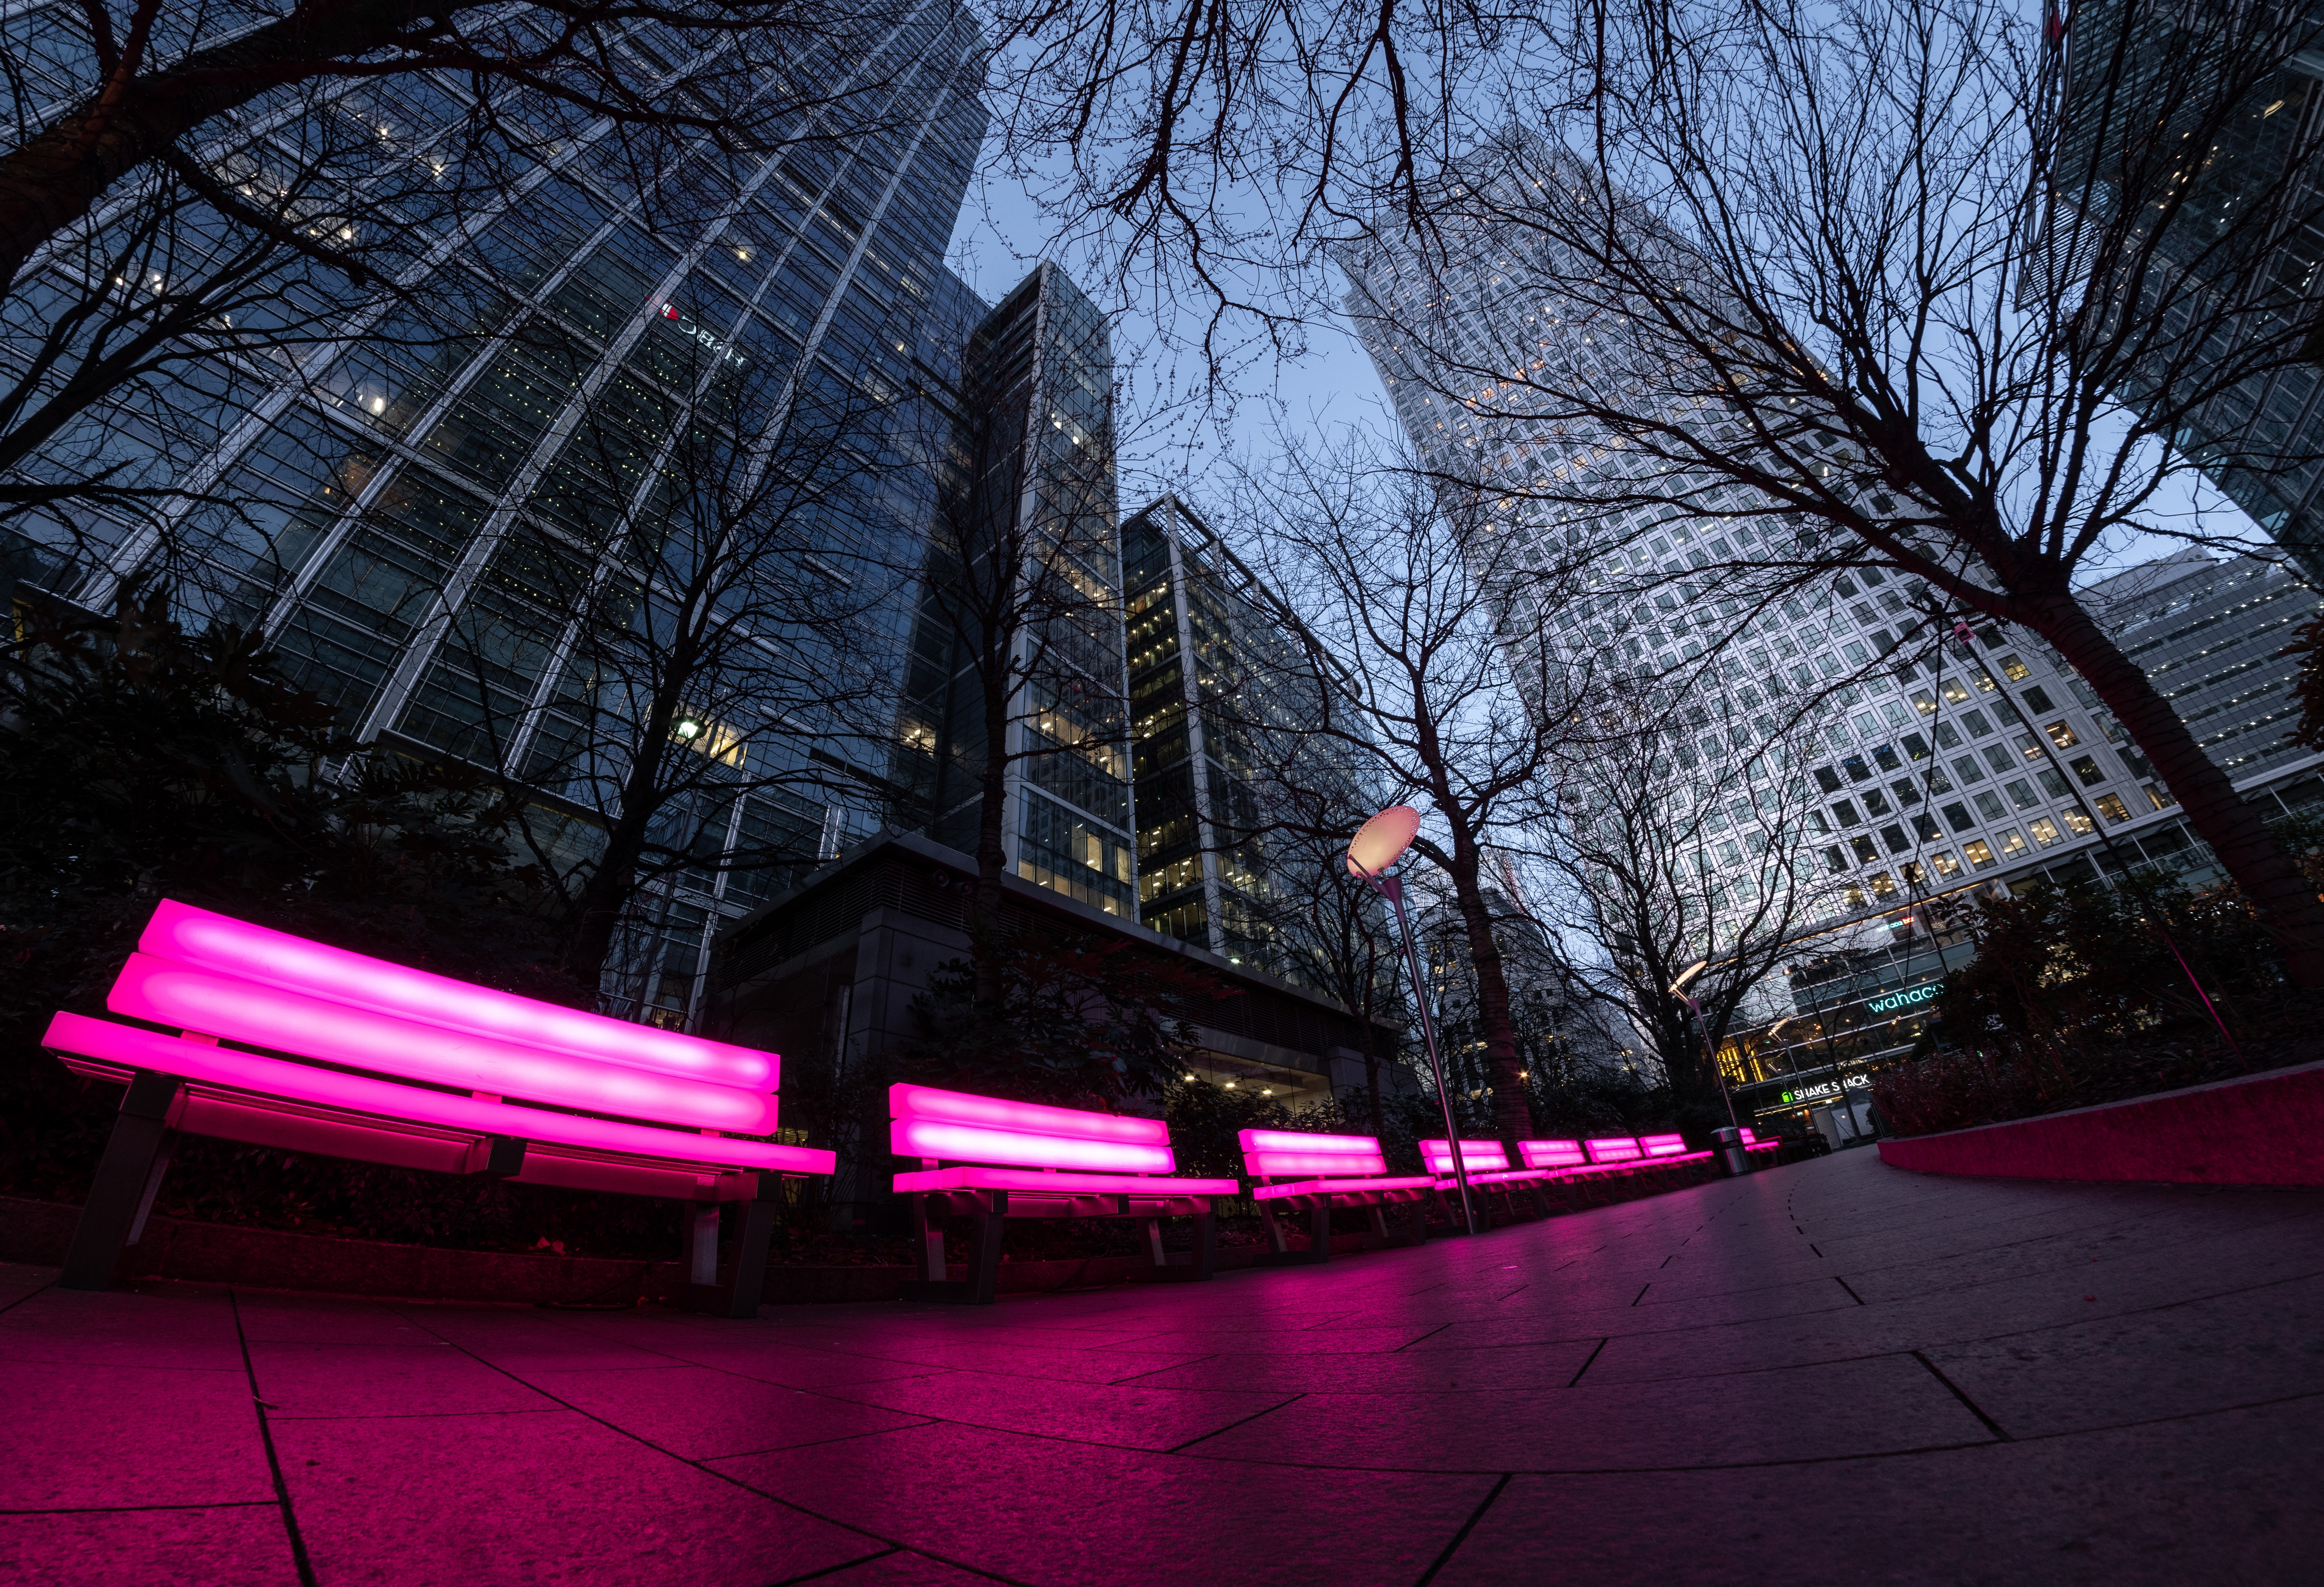 lighted pink color benches at the park near buildings